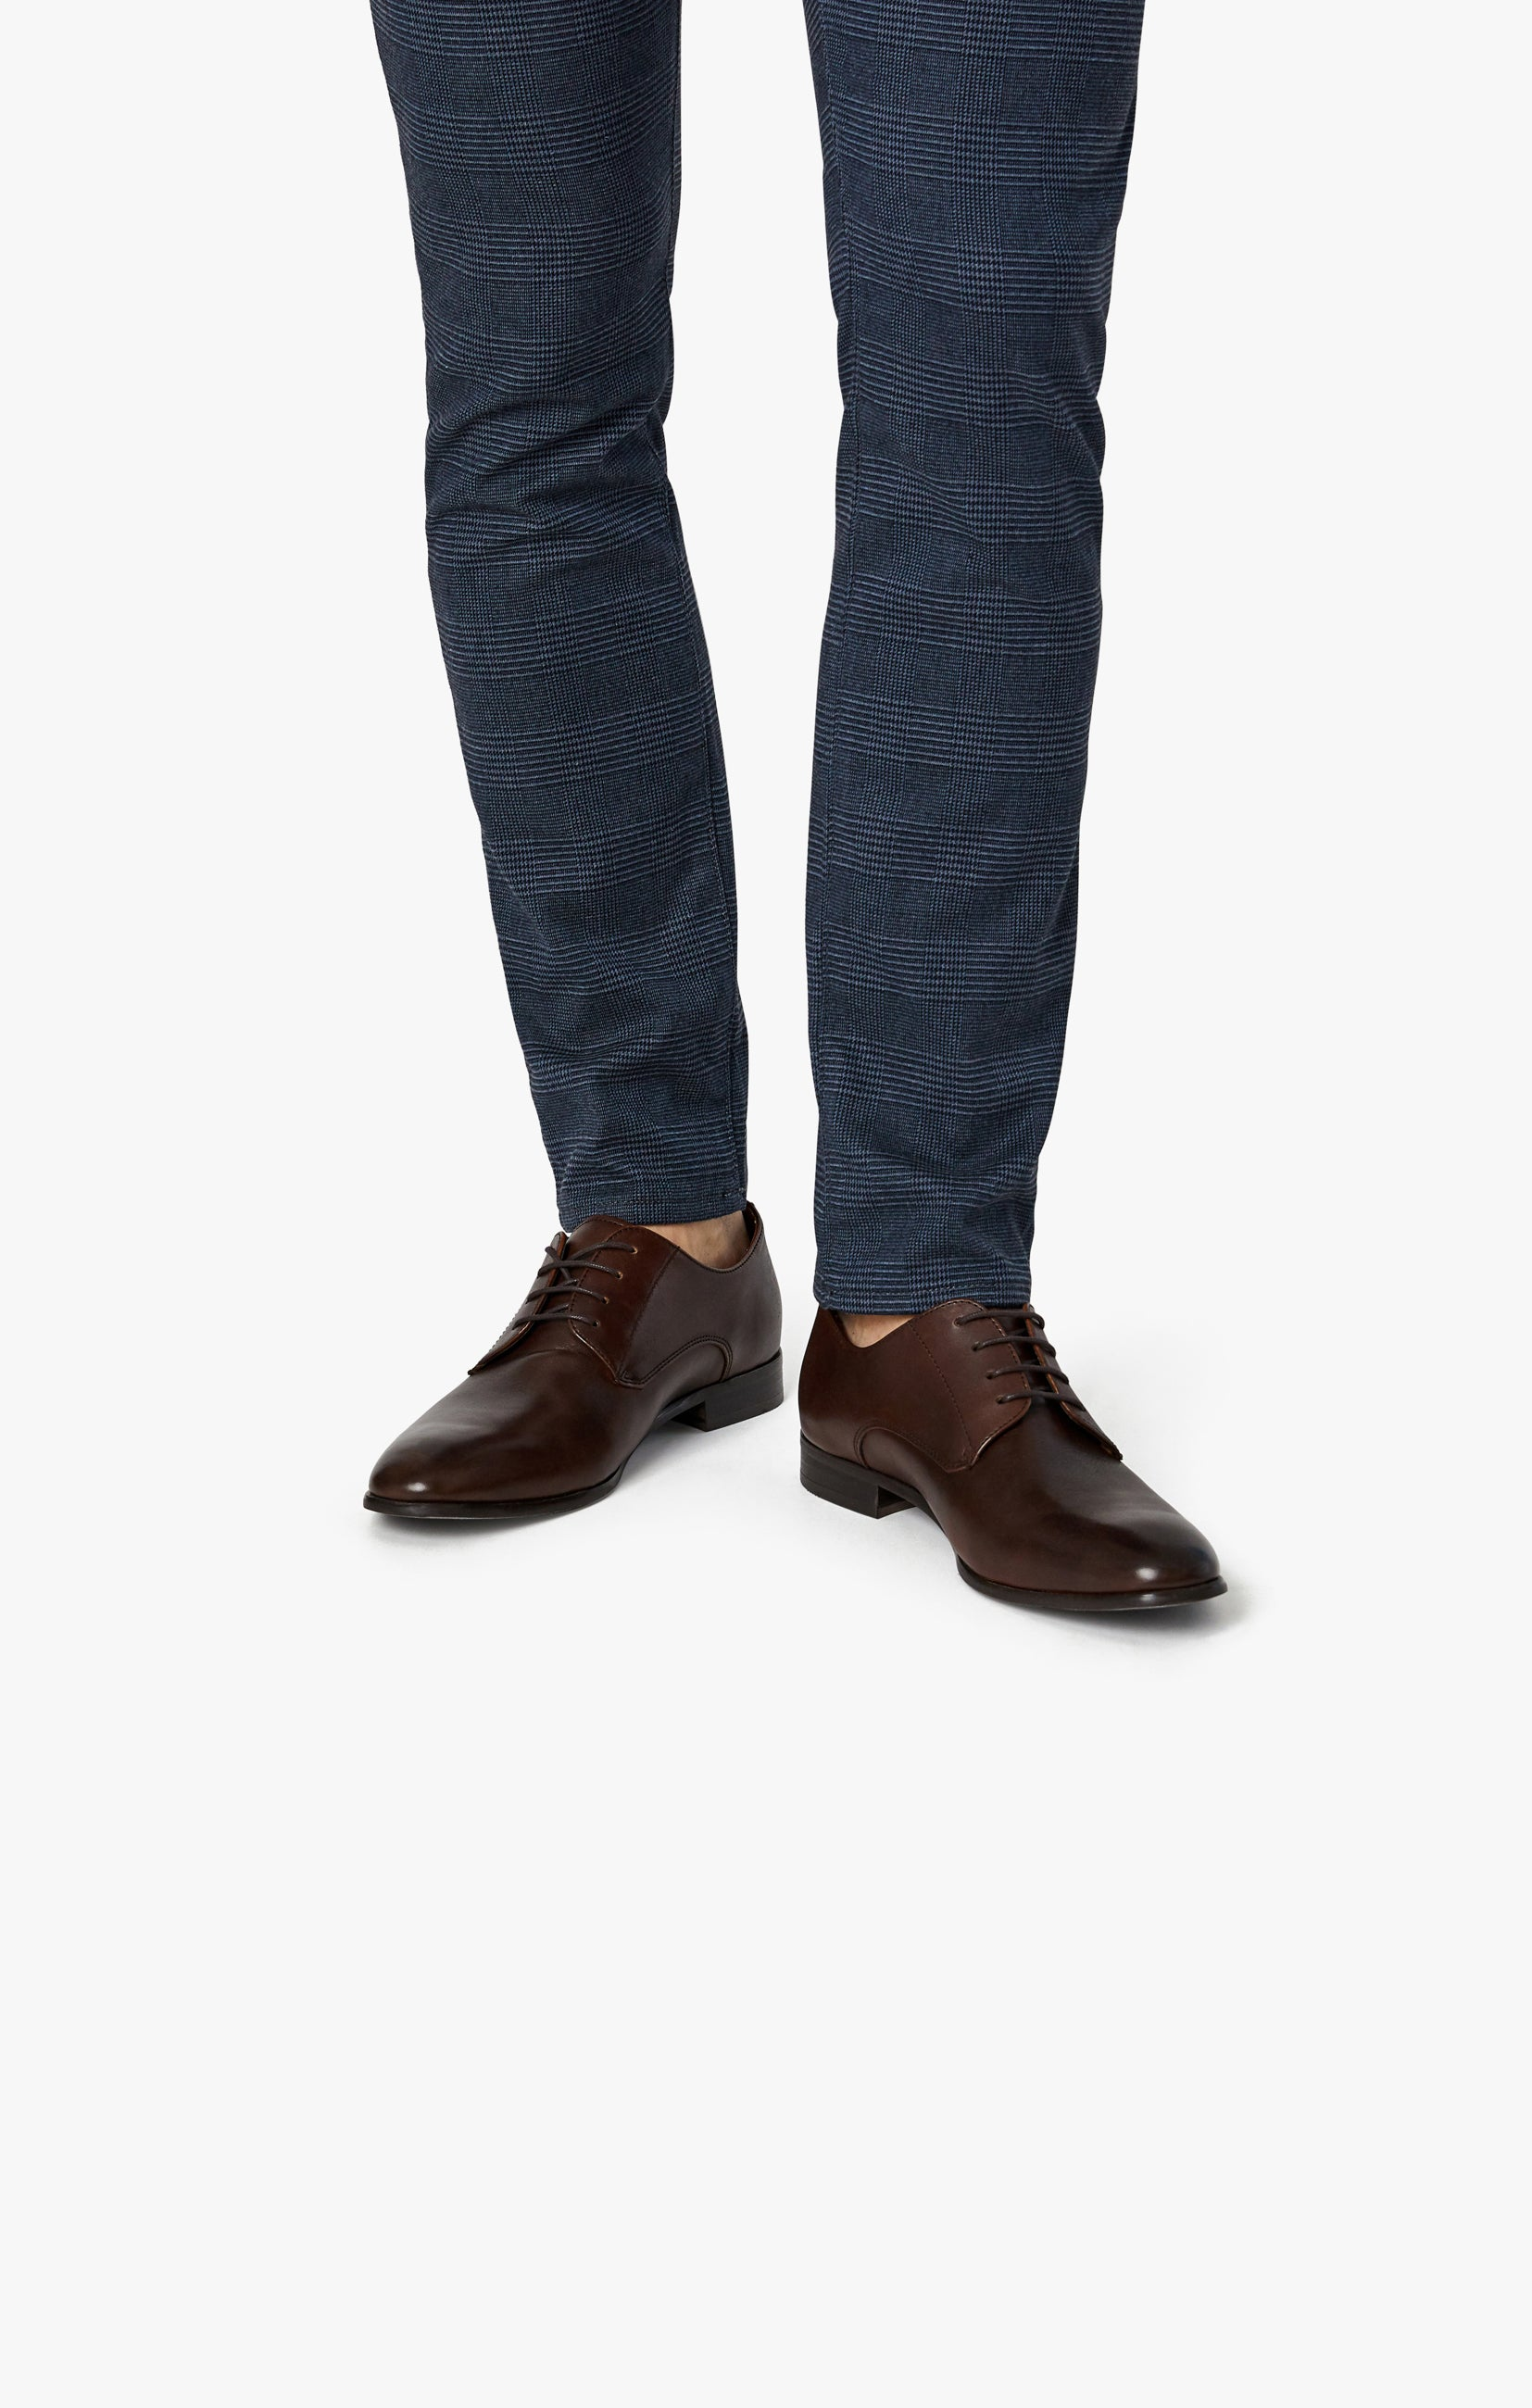 Courage Straight Leg Pants in Navy Checked Image 6